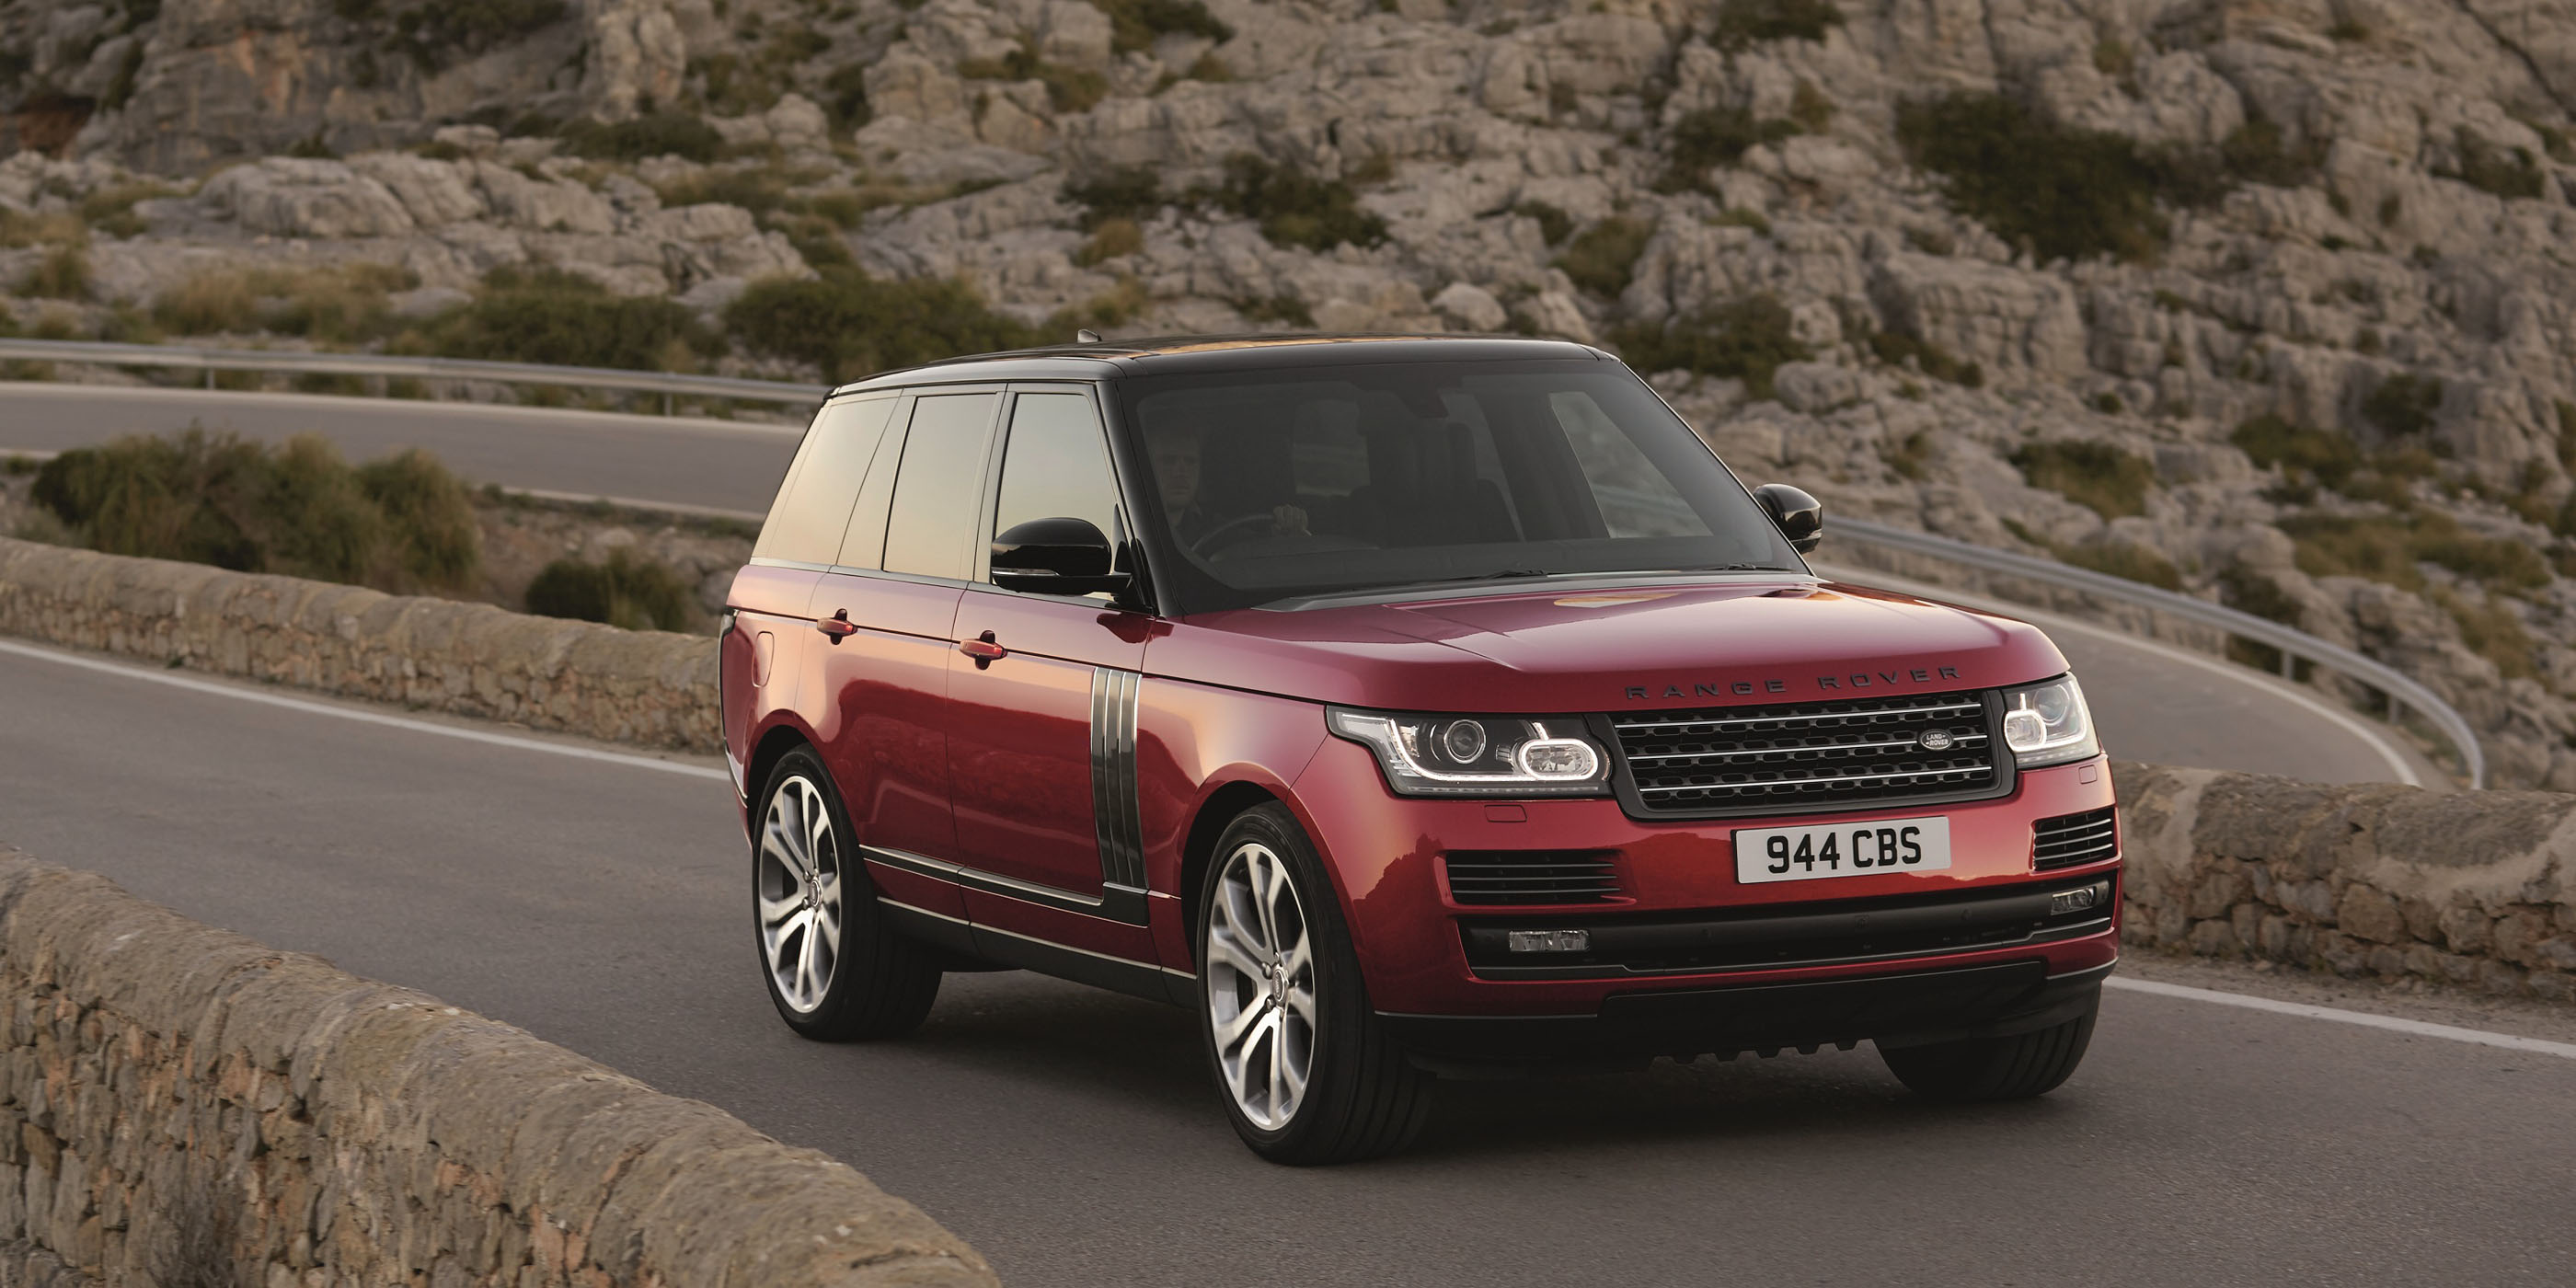 car cheap rover review reviews red front gear land evoque range top landrover